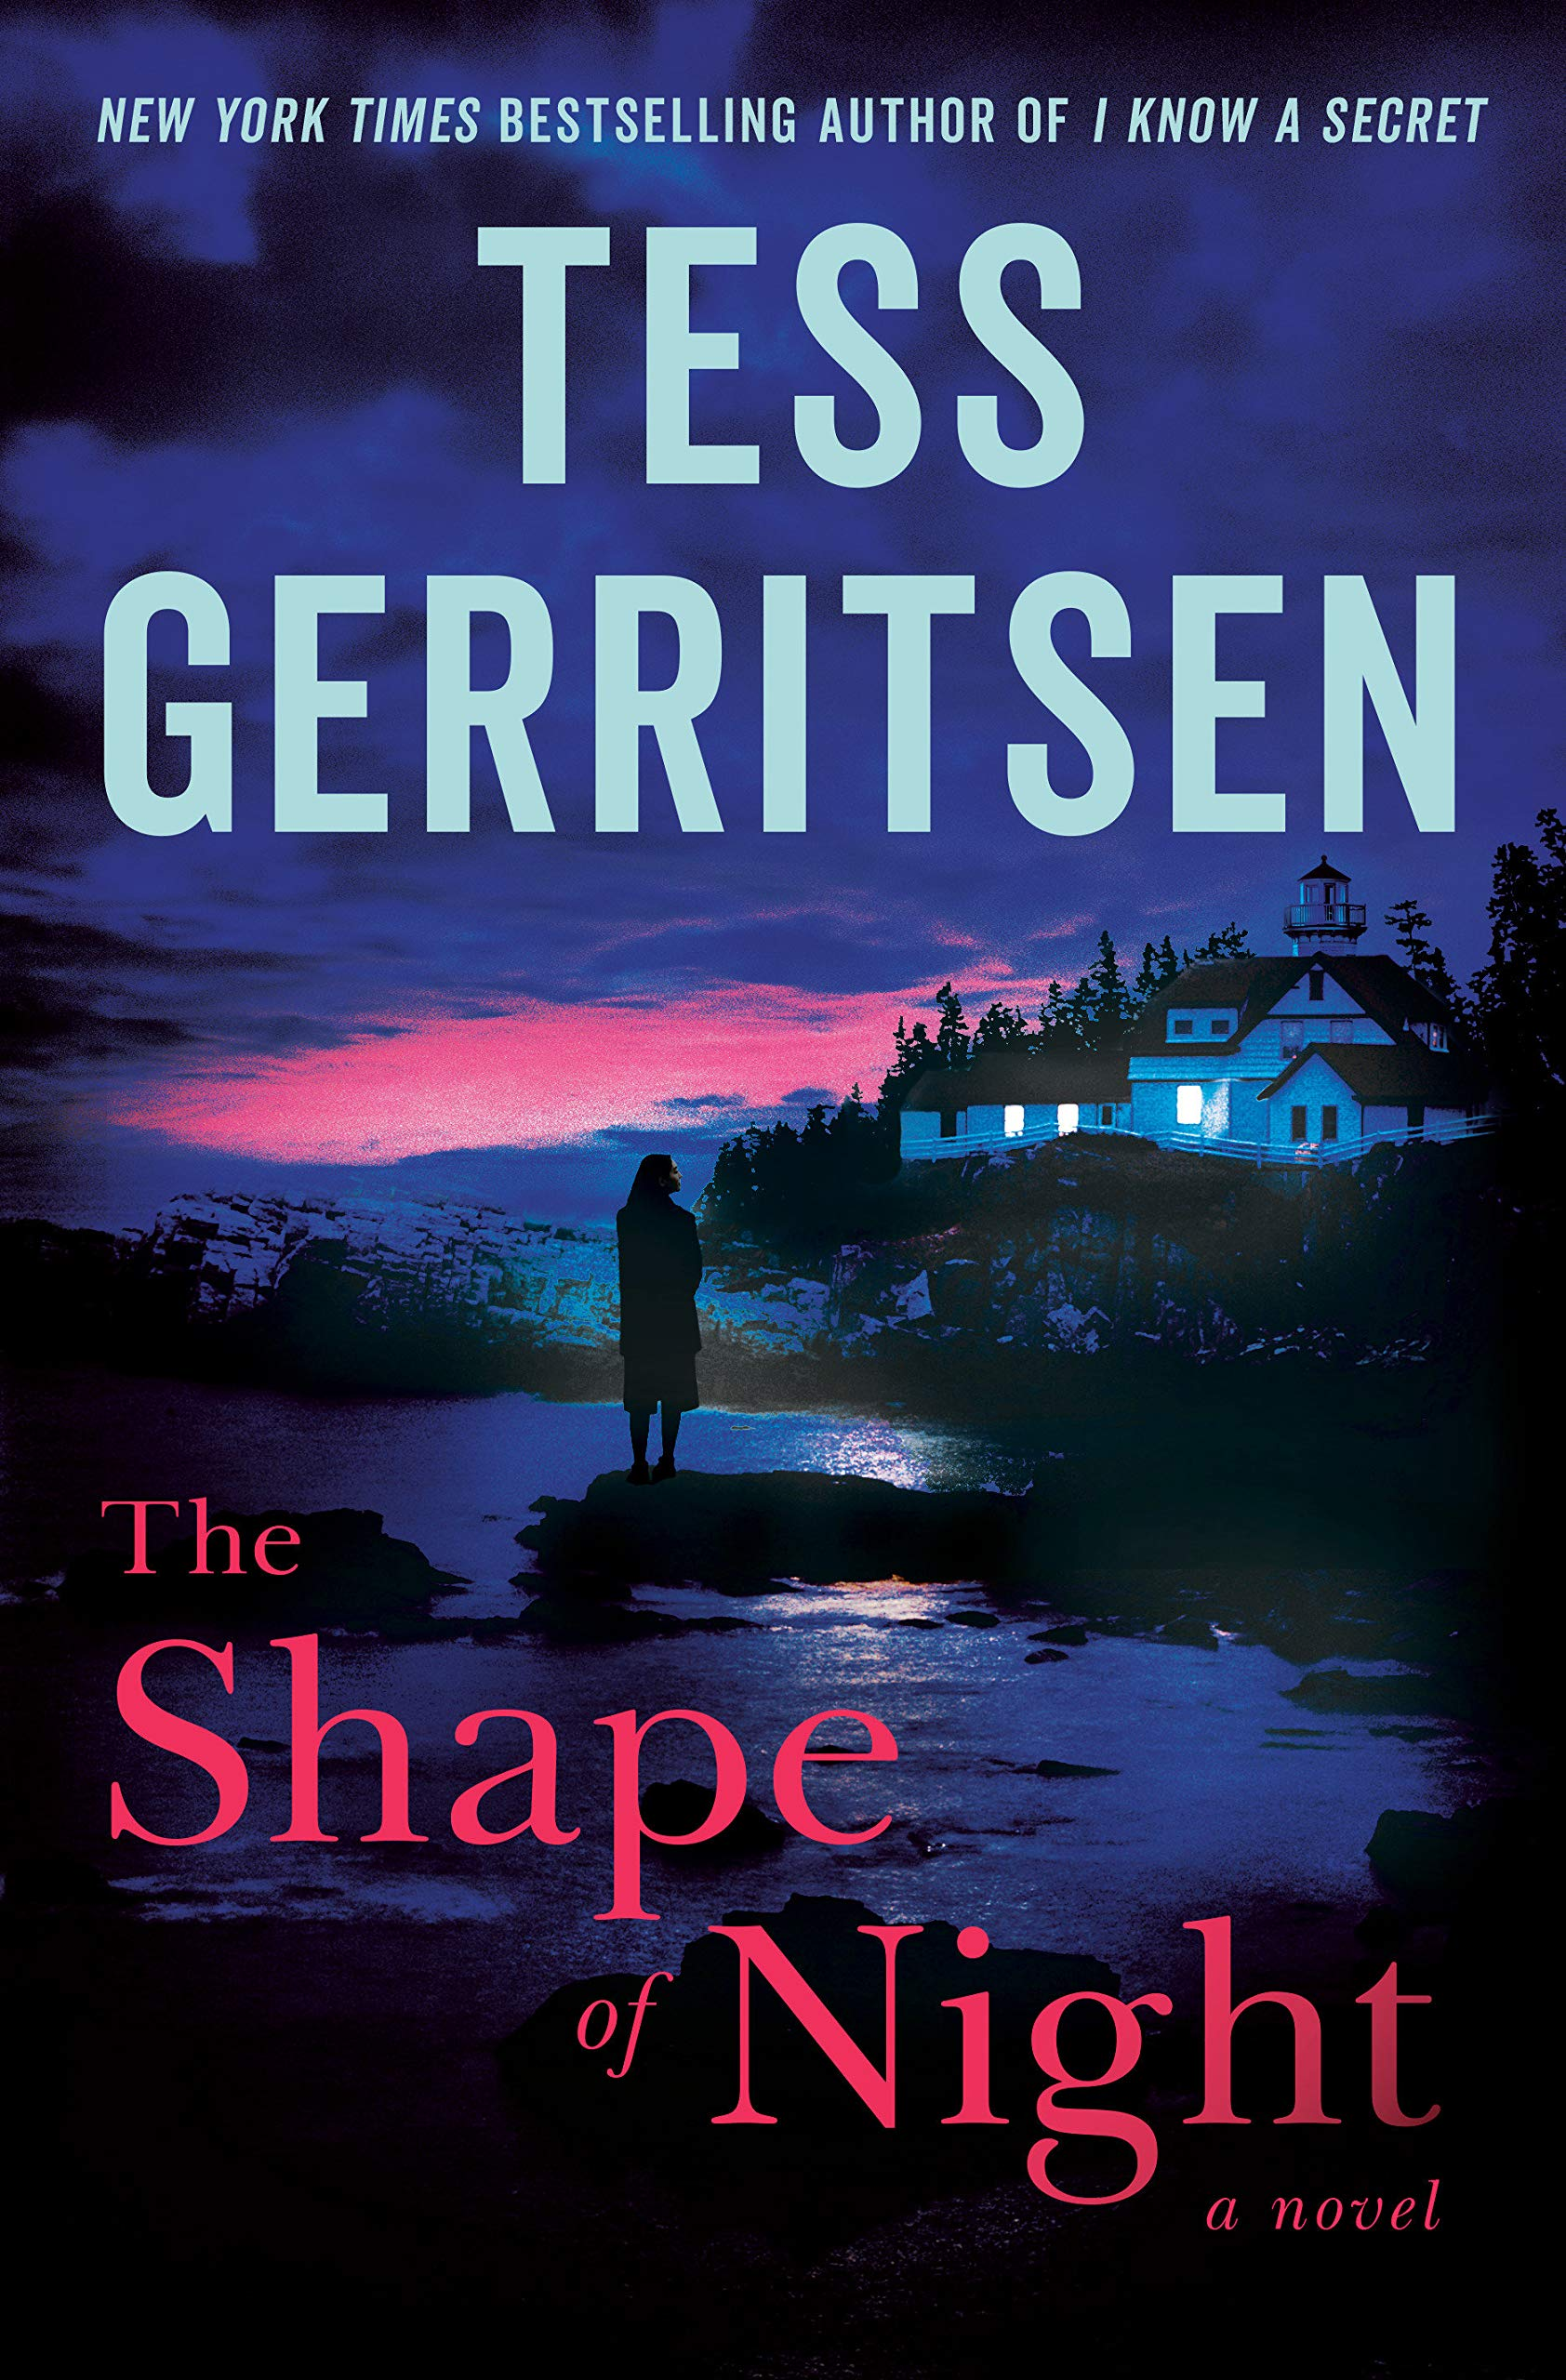 The Shape of Night: Amazon.co.uk: Gerritsen, Tess: 9781984820952: Books